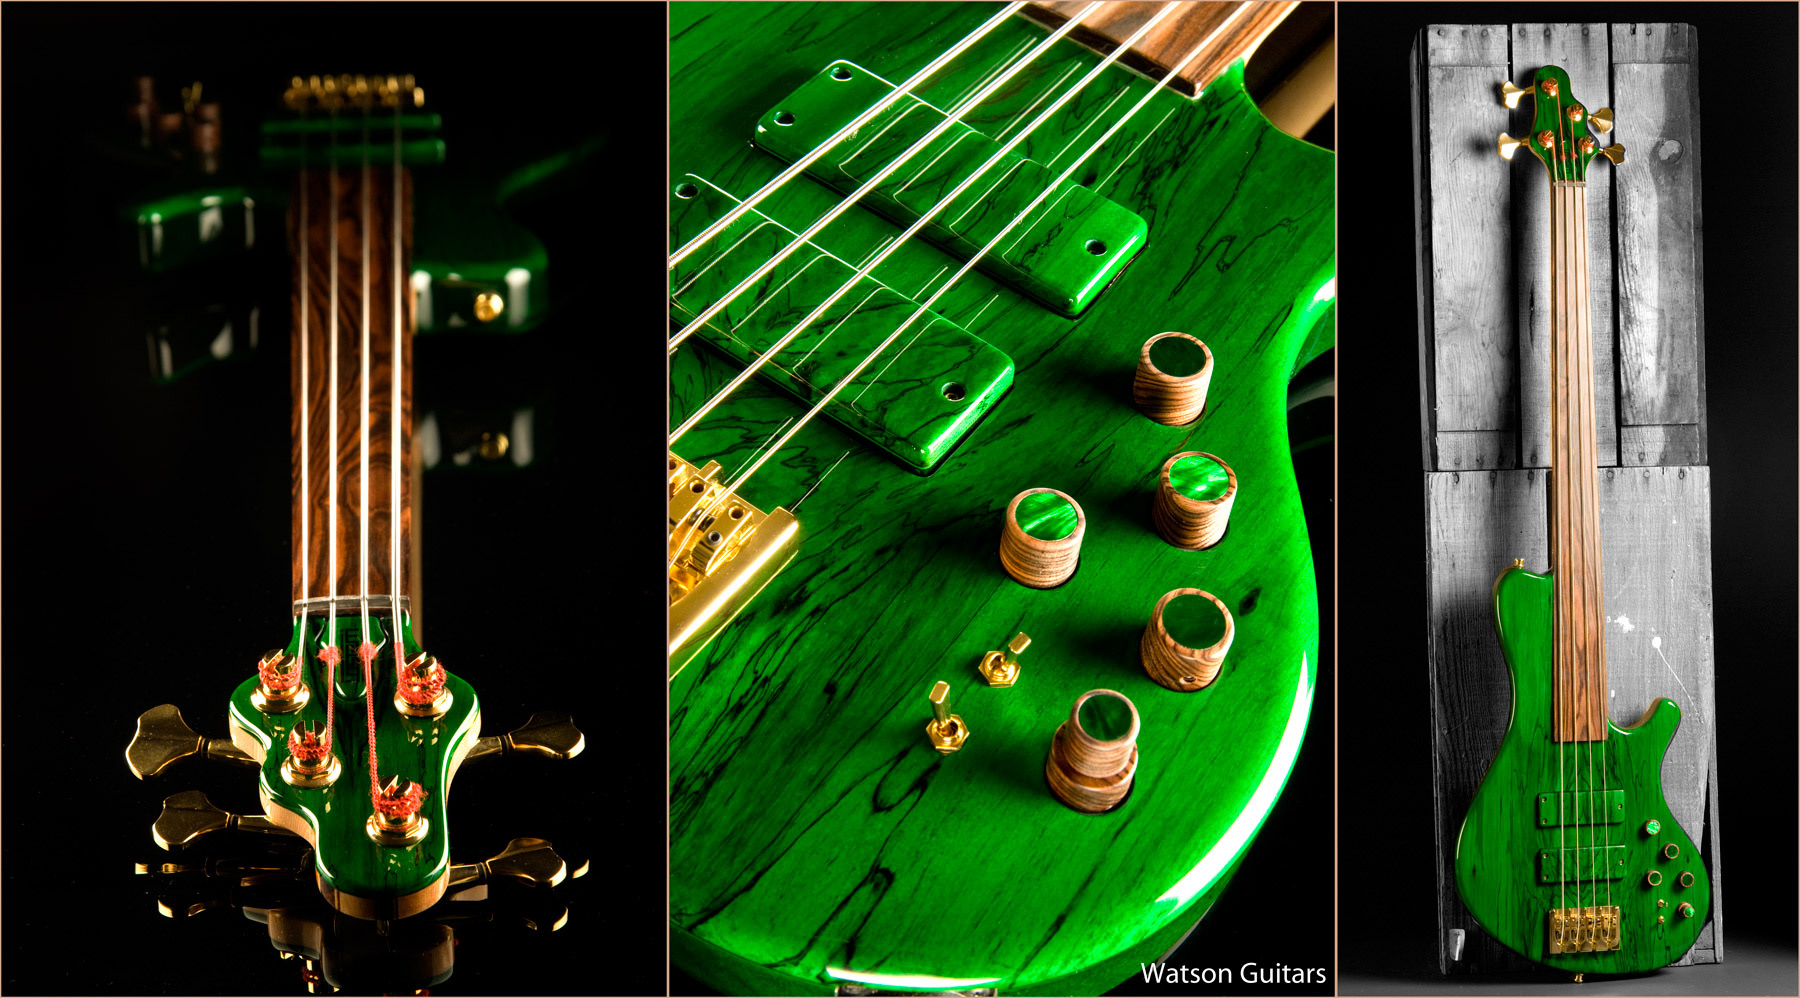 Alex Watson Guitars 1-Musicman Photography